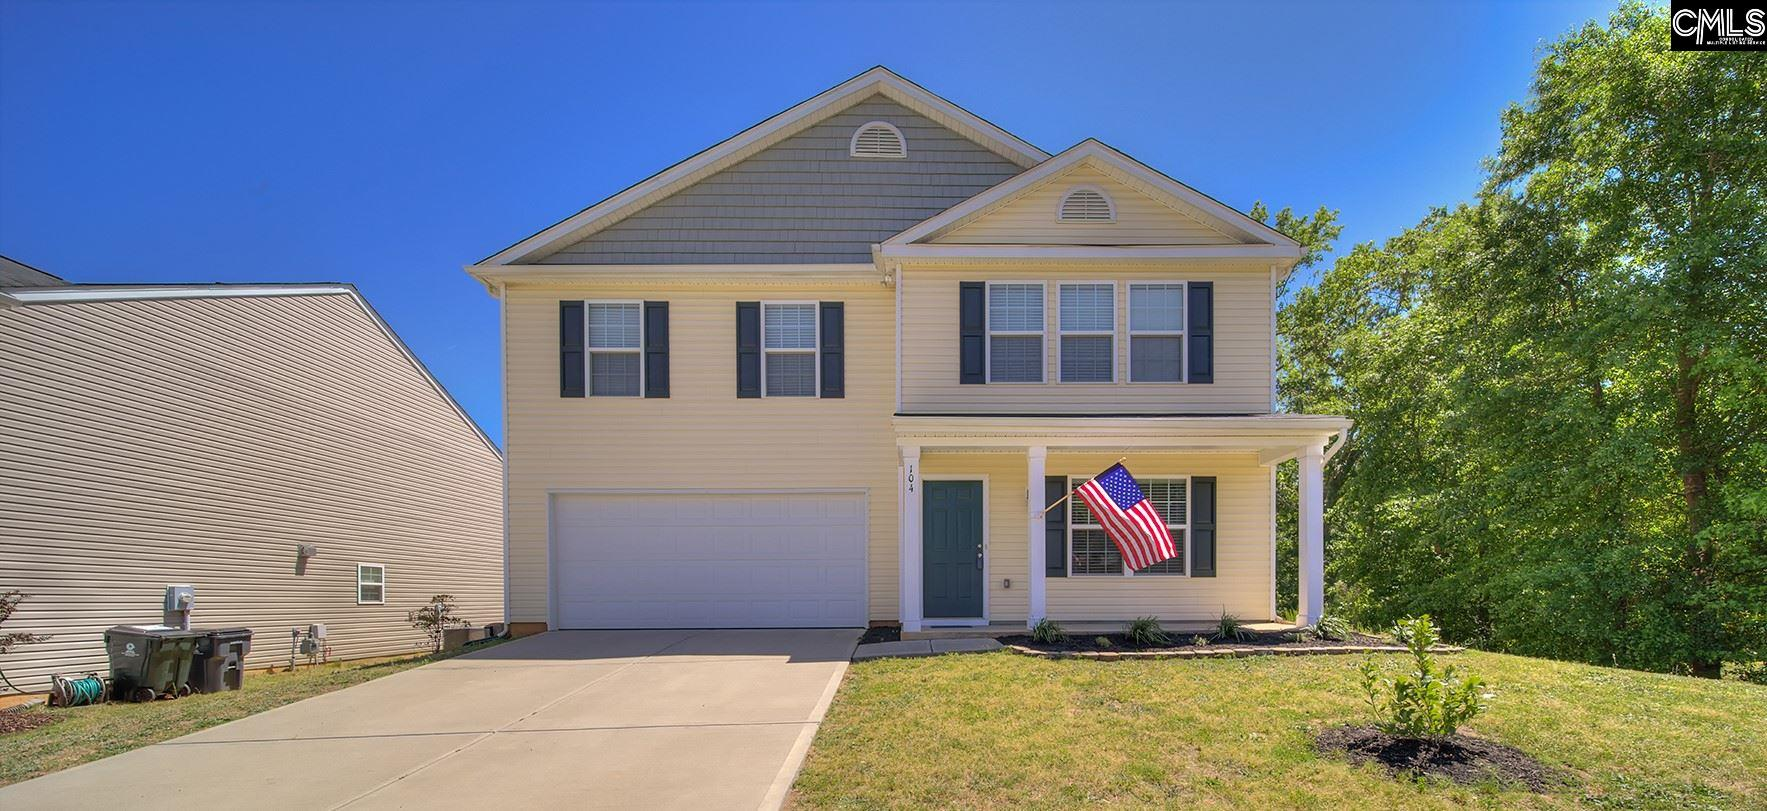 104 Feather Site Lexington, SC 29072